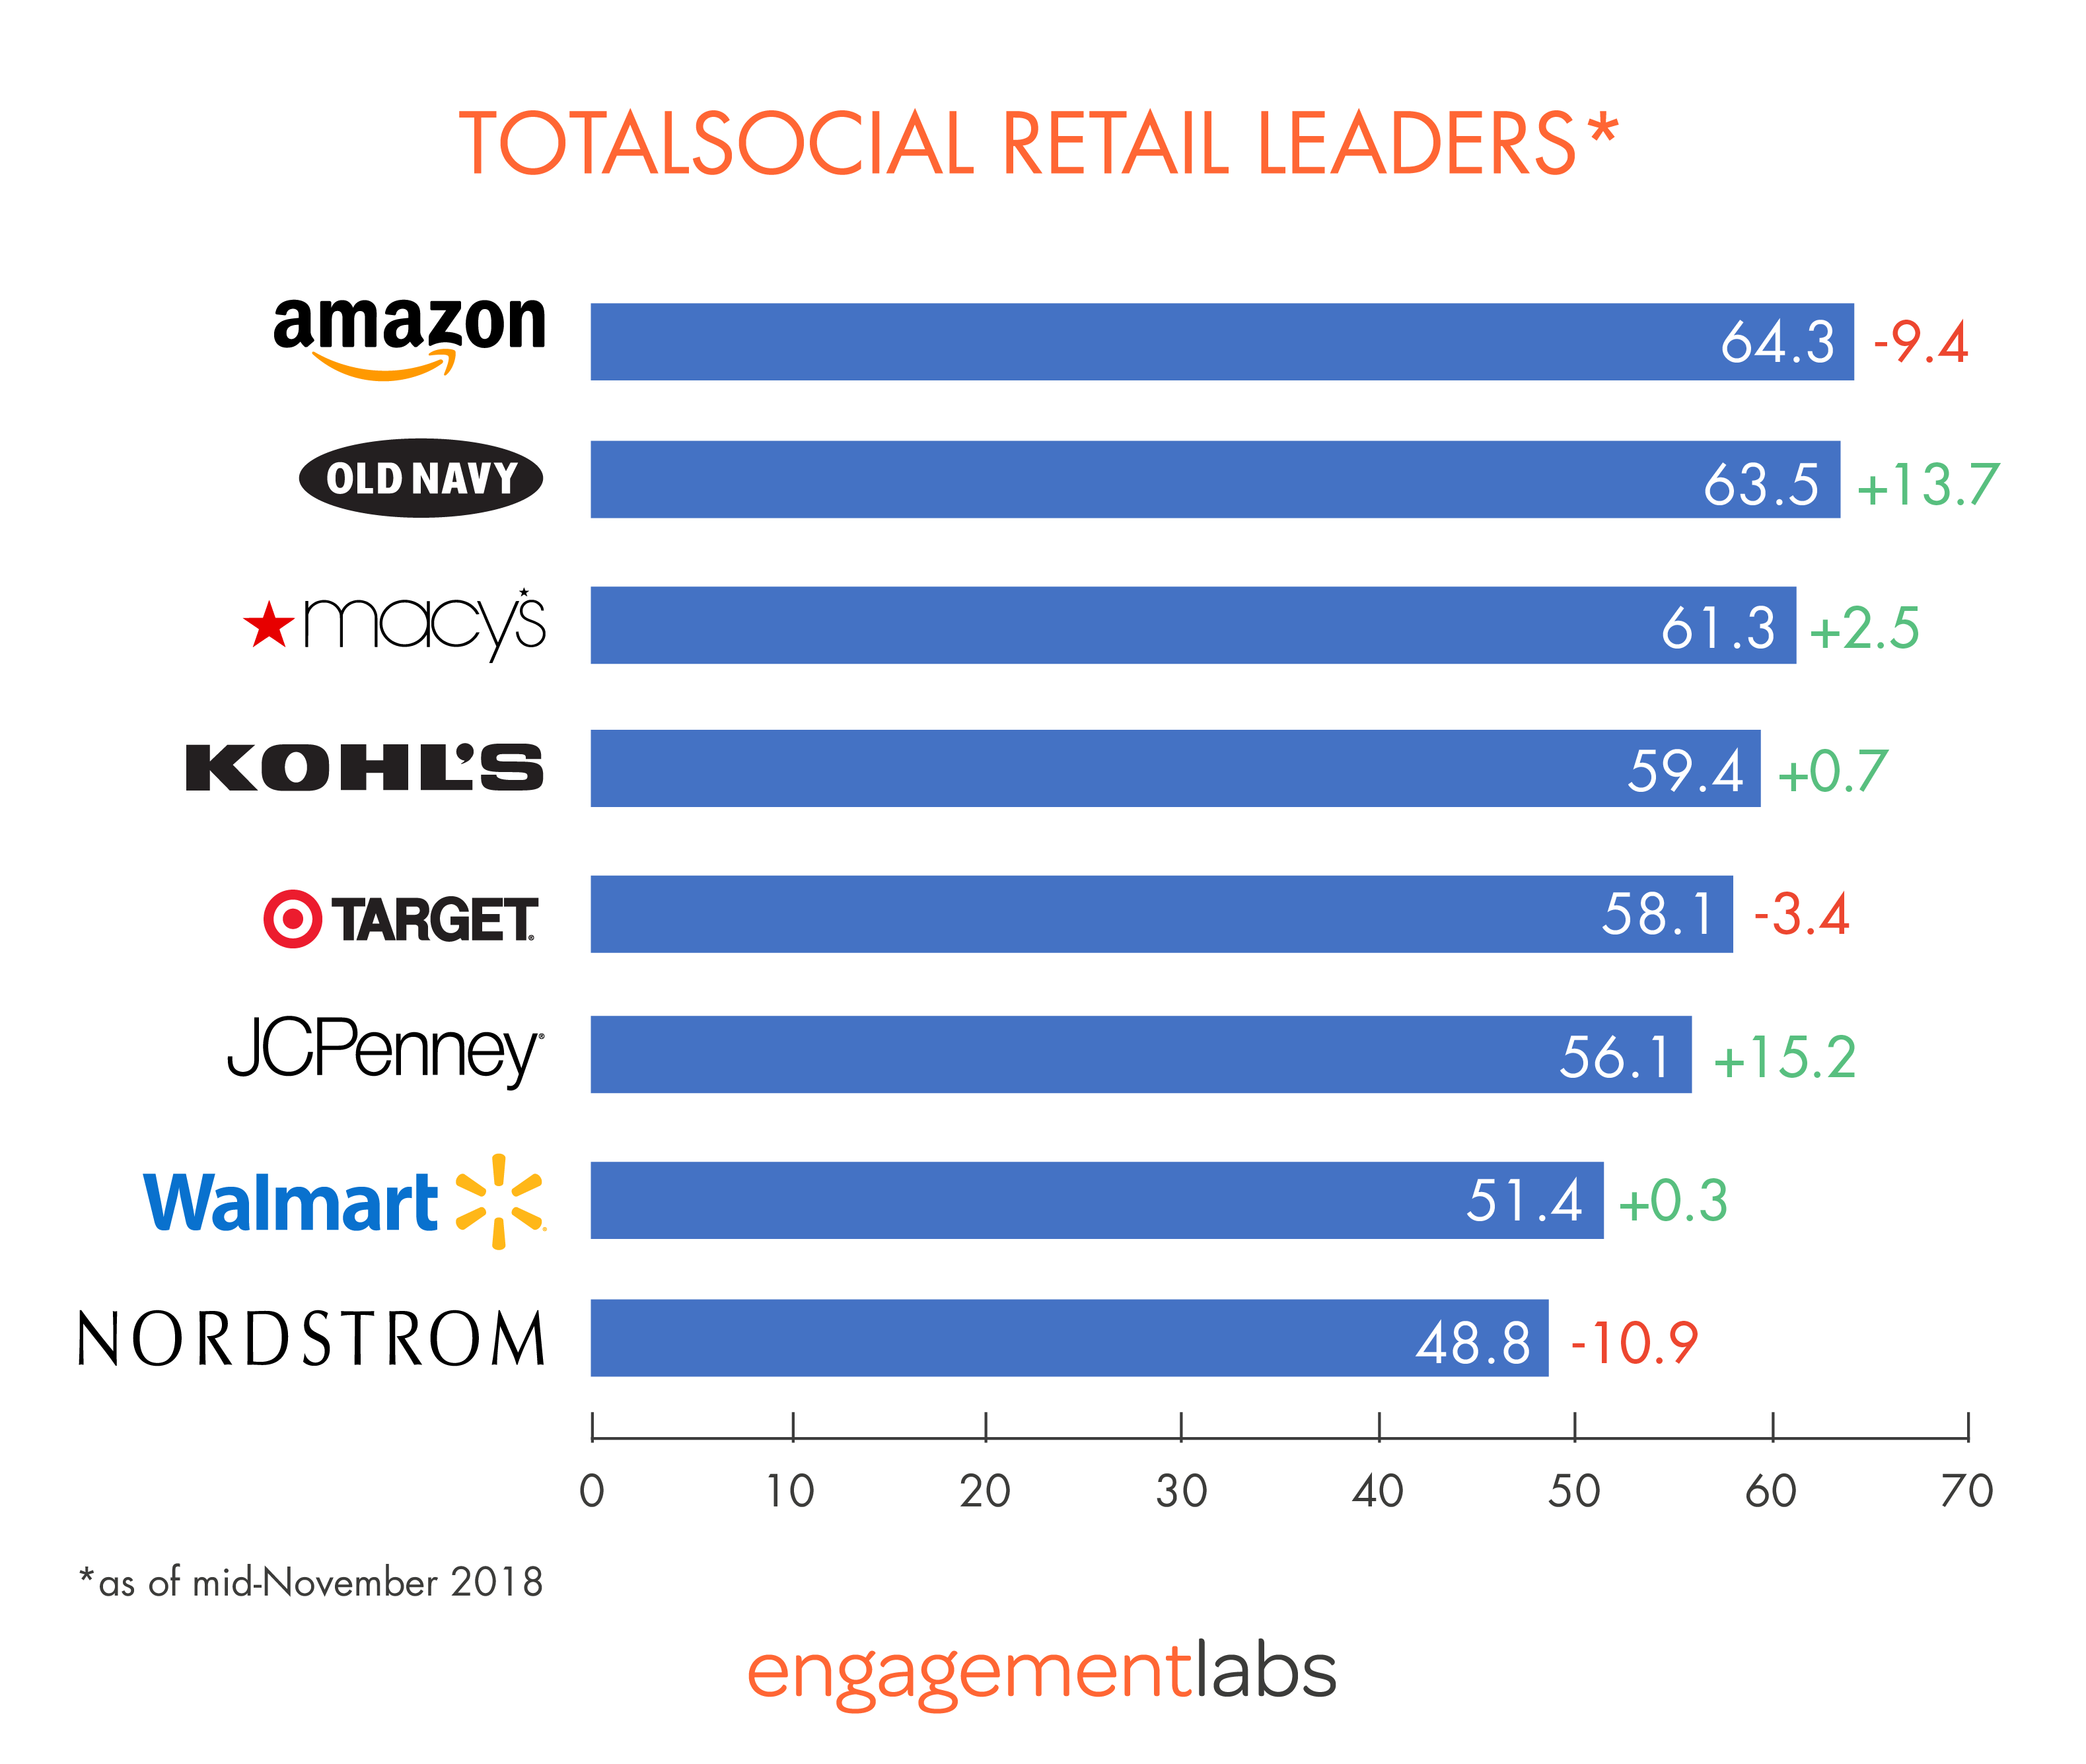 TotalSocial Retail Leaders